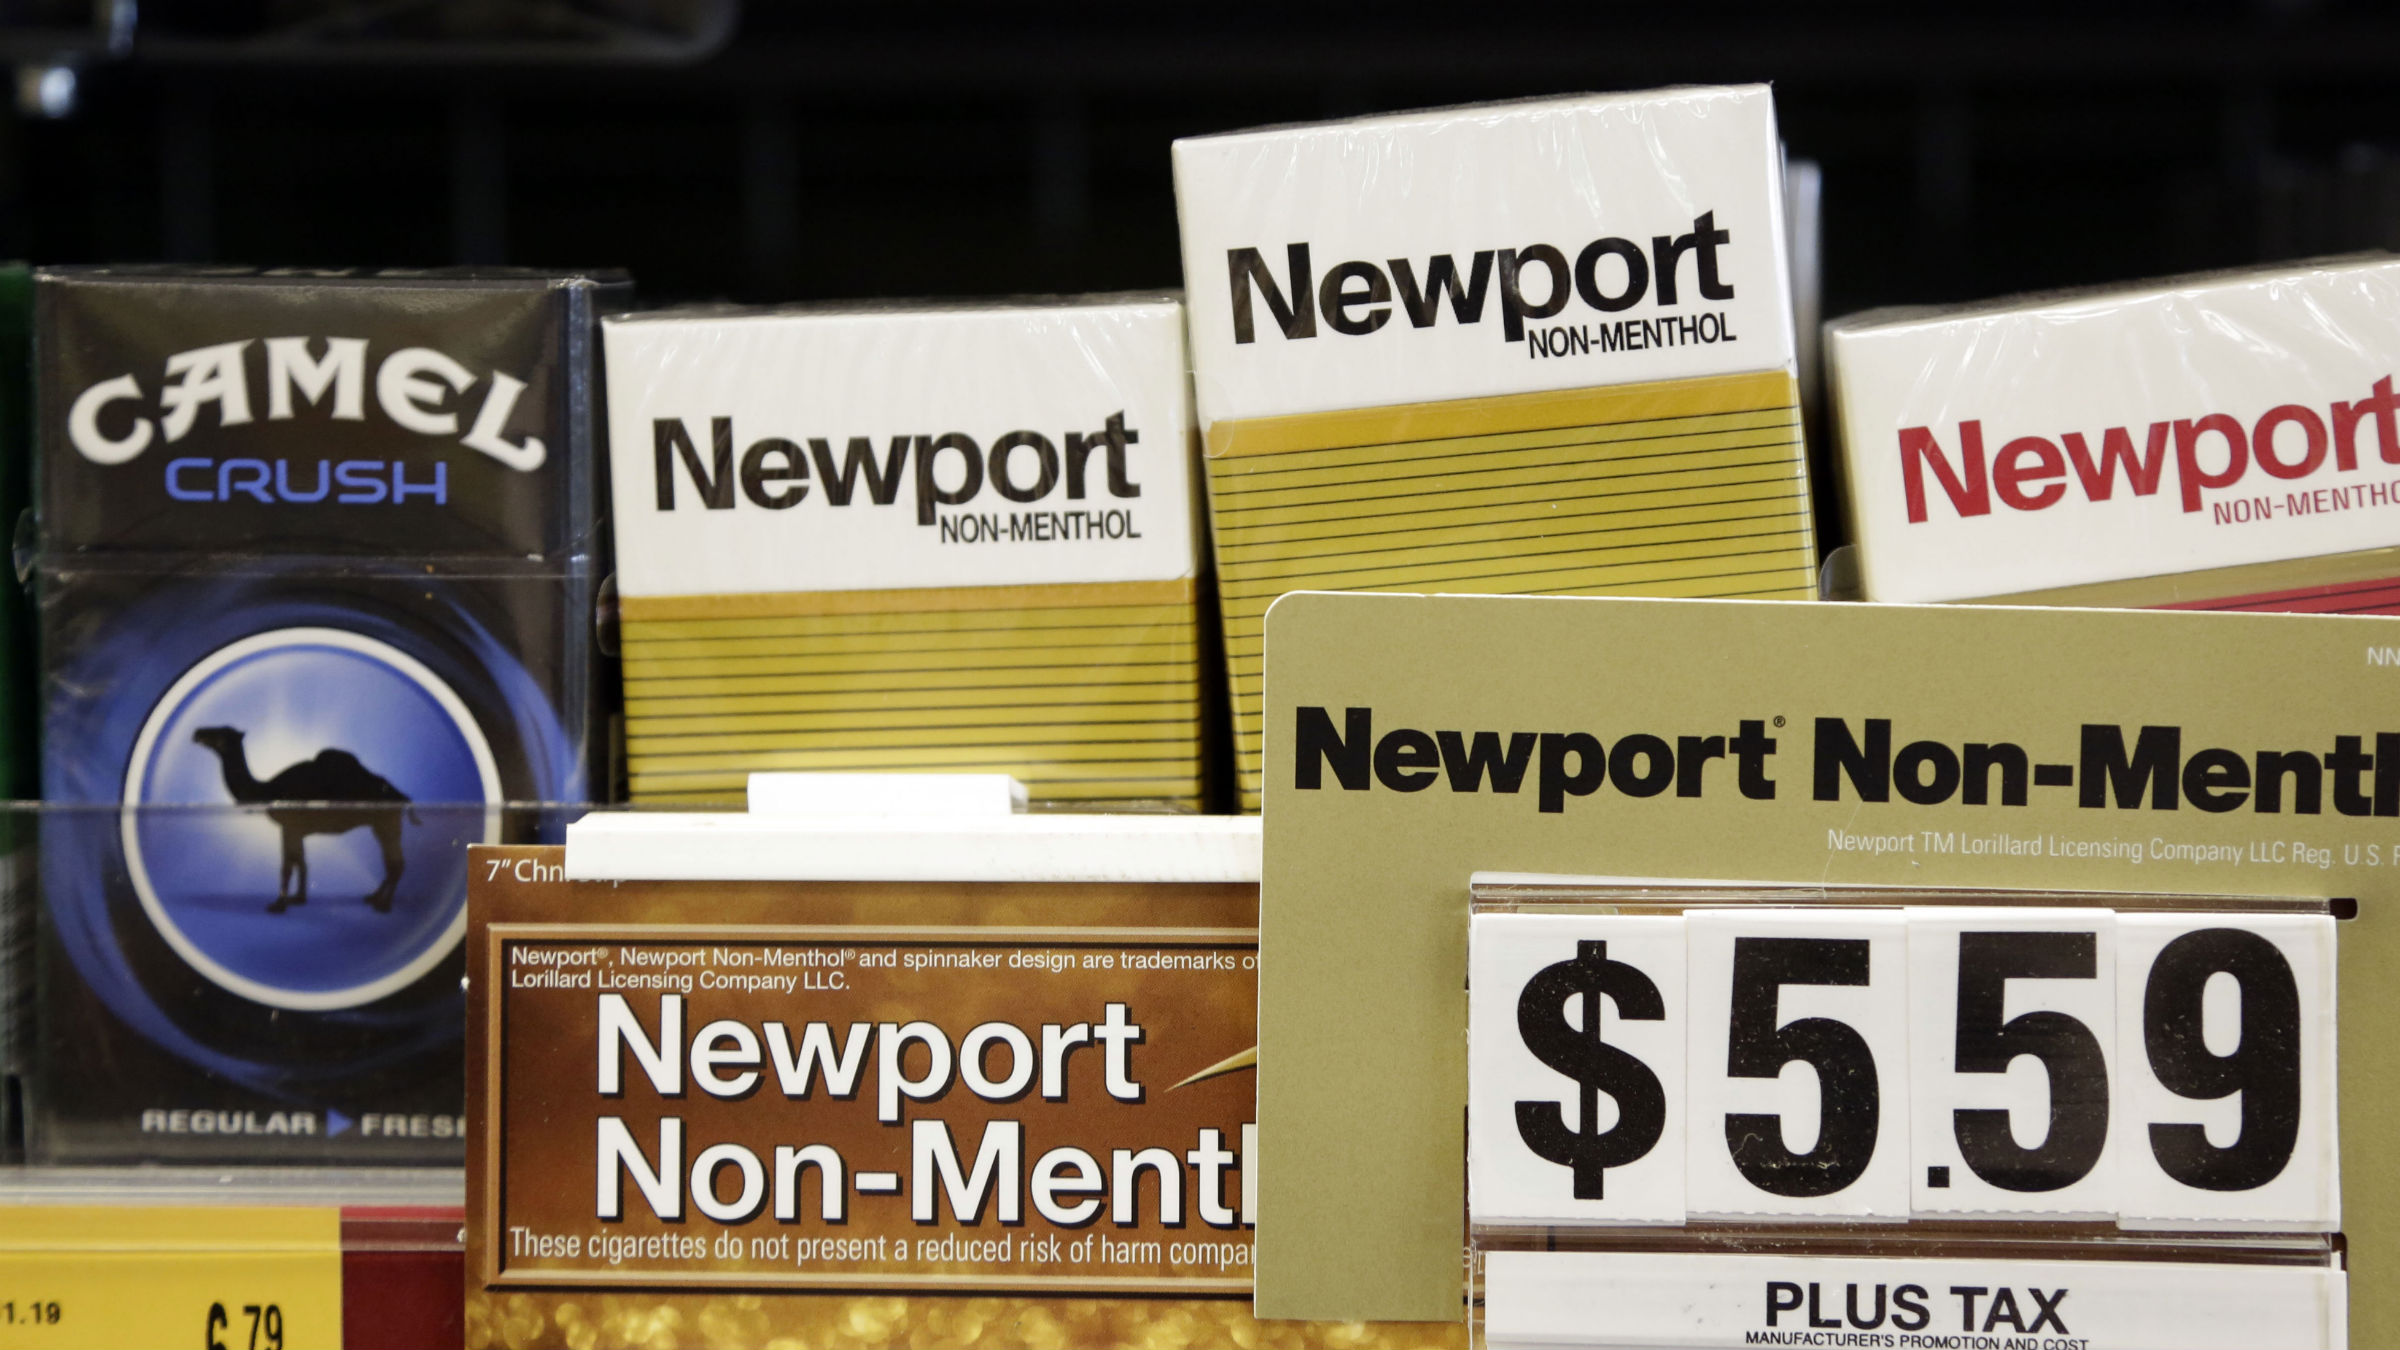 Camel, a Reynolds American brand, and Newport, a Lorillard brand, cigarettes are displayed for sale, Tuesday, July 15, 2014, in Doral, Fla. Cigarette maker Reynolds American Inc. is planning to buy rival Lorillard Inc. for about $25 billion in a deal to combine two of the nation's oldest and biggest tobacco companies.